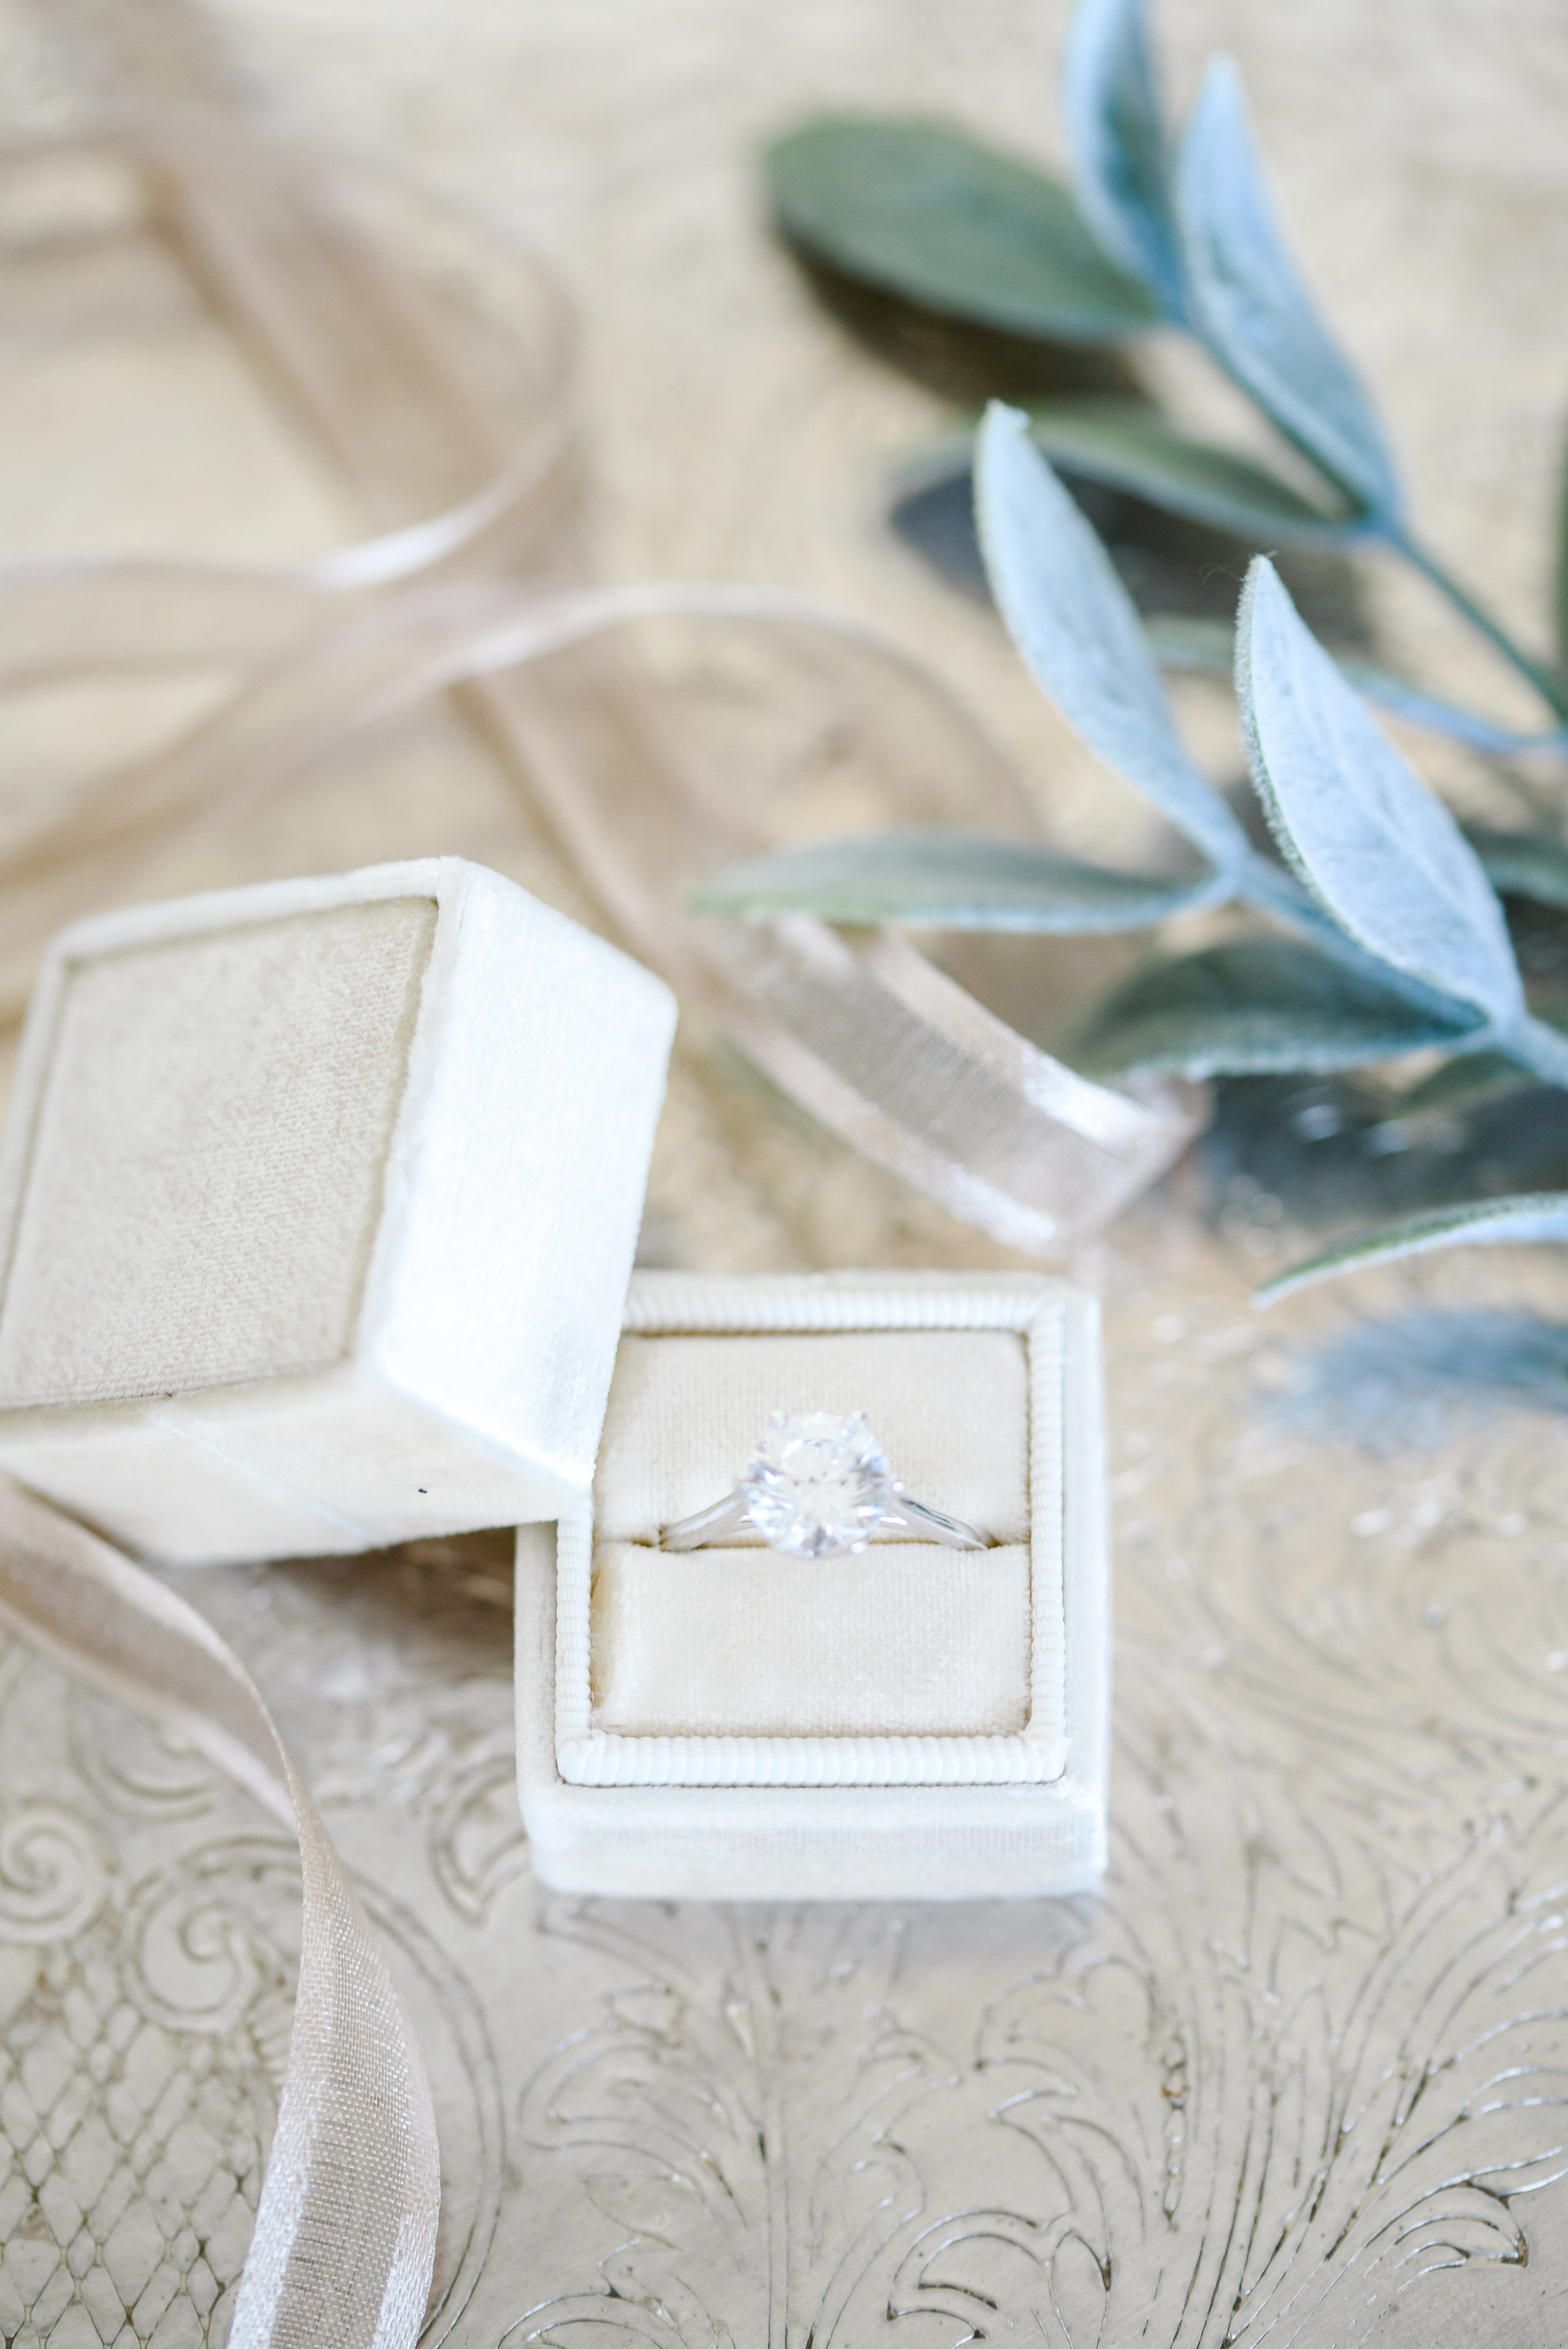 Solitaire Engagement Ring | The Mrs. Ring Box